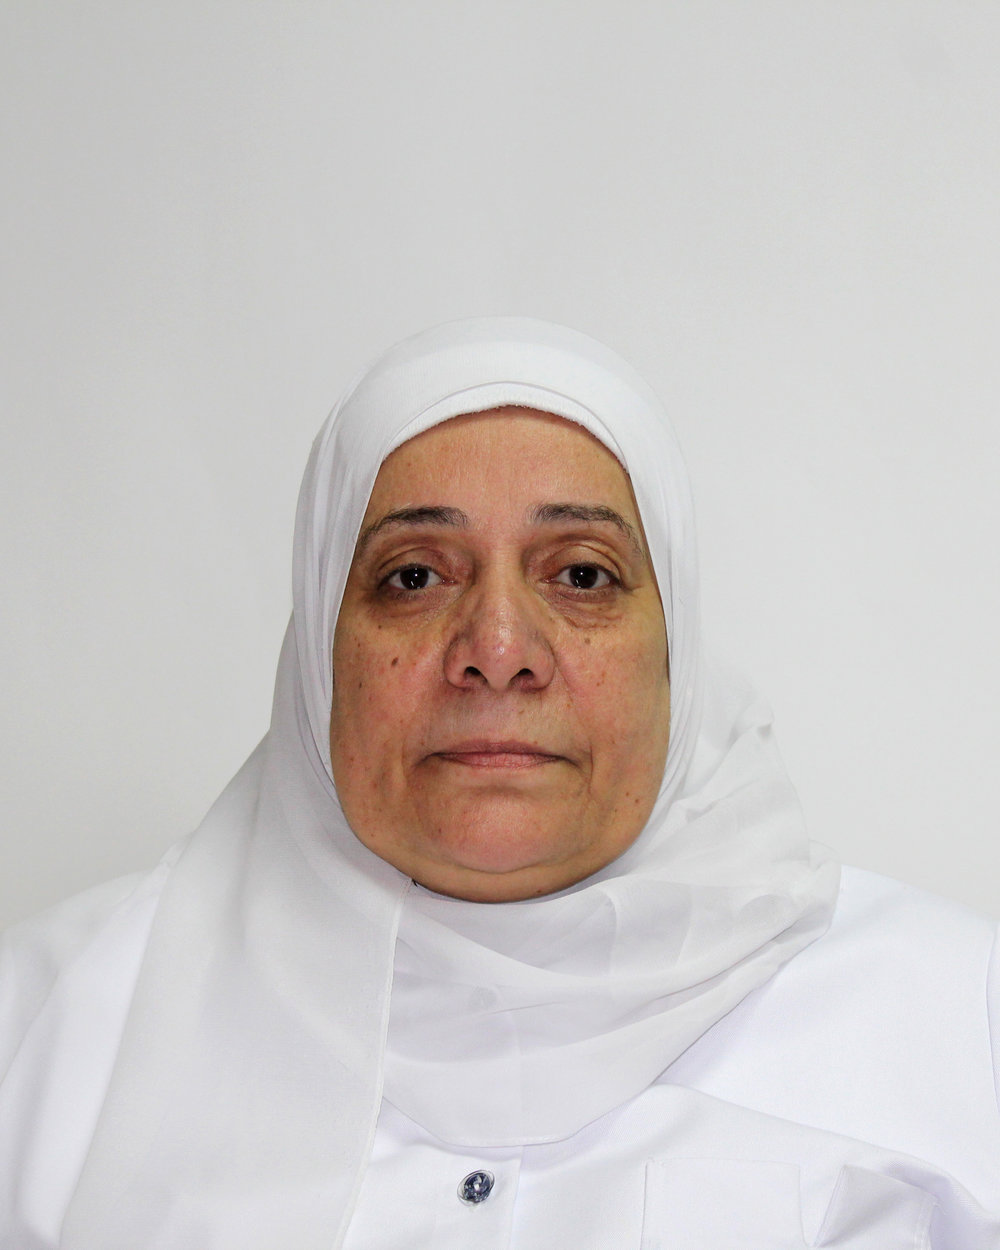 Mrs. Samya Shams